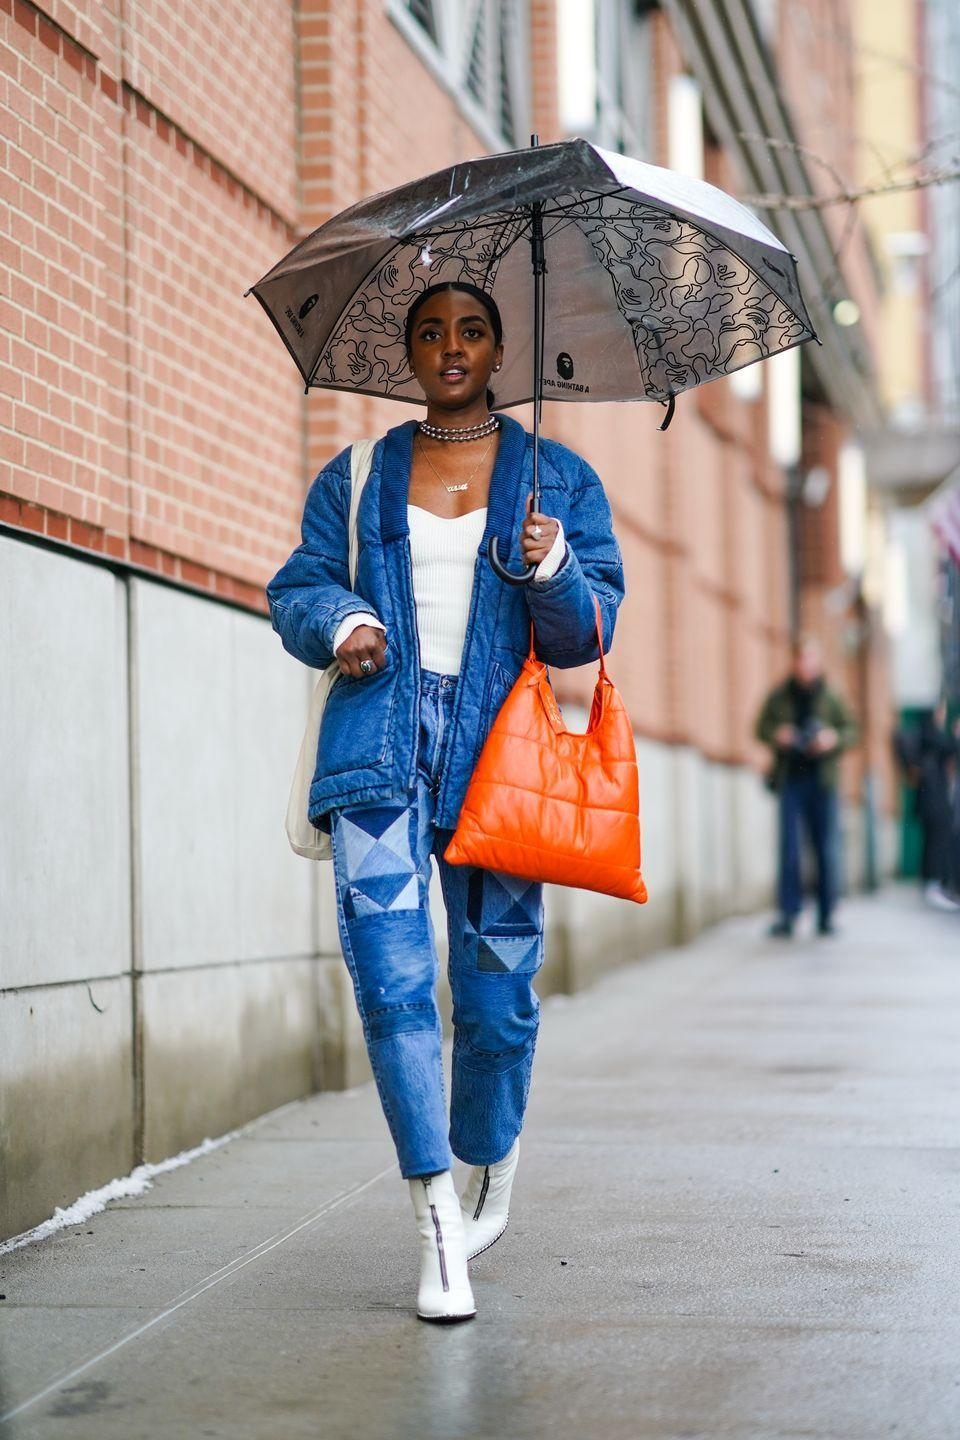 """<p>One of fall's best accessory trends: XL quilted bags. They'll go perfectly with all those <a href=""""http://www.seventeen.com/fashion/style-advice/g708/cute-jogger-sweatpants/"""" rel=""""nofollow noopener"""" target=""""_blank"""" data-ylk=""""slk:athleisure looks"""" class=""""link rapid-noclick-resp"""">athleisure looks</a> you've mastered while social distancing.<br><br></p>"""